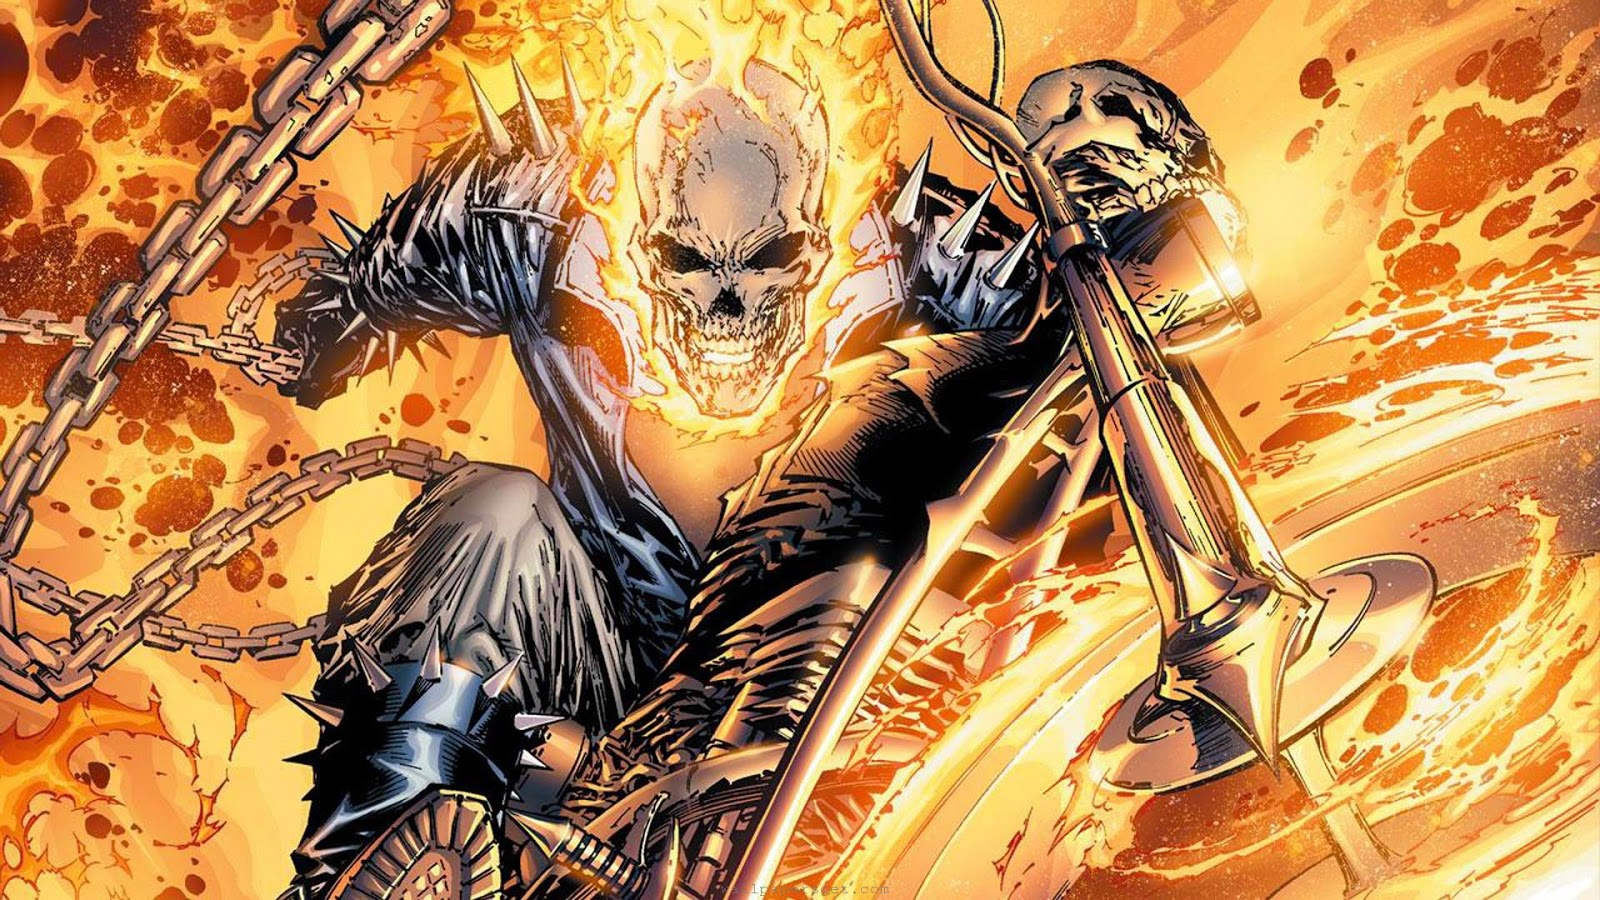 free hd wallpapers: ghost rider 2 wallpapers collection